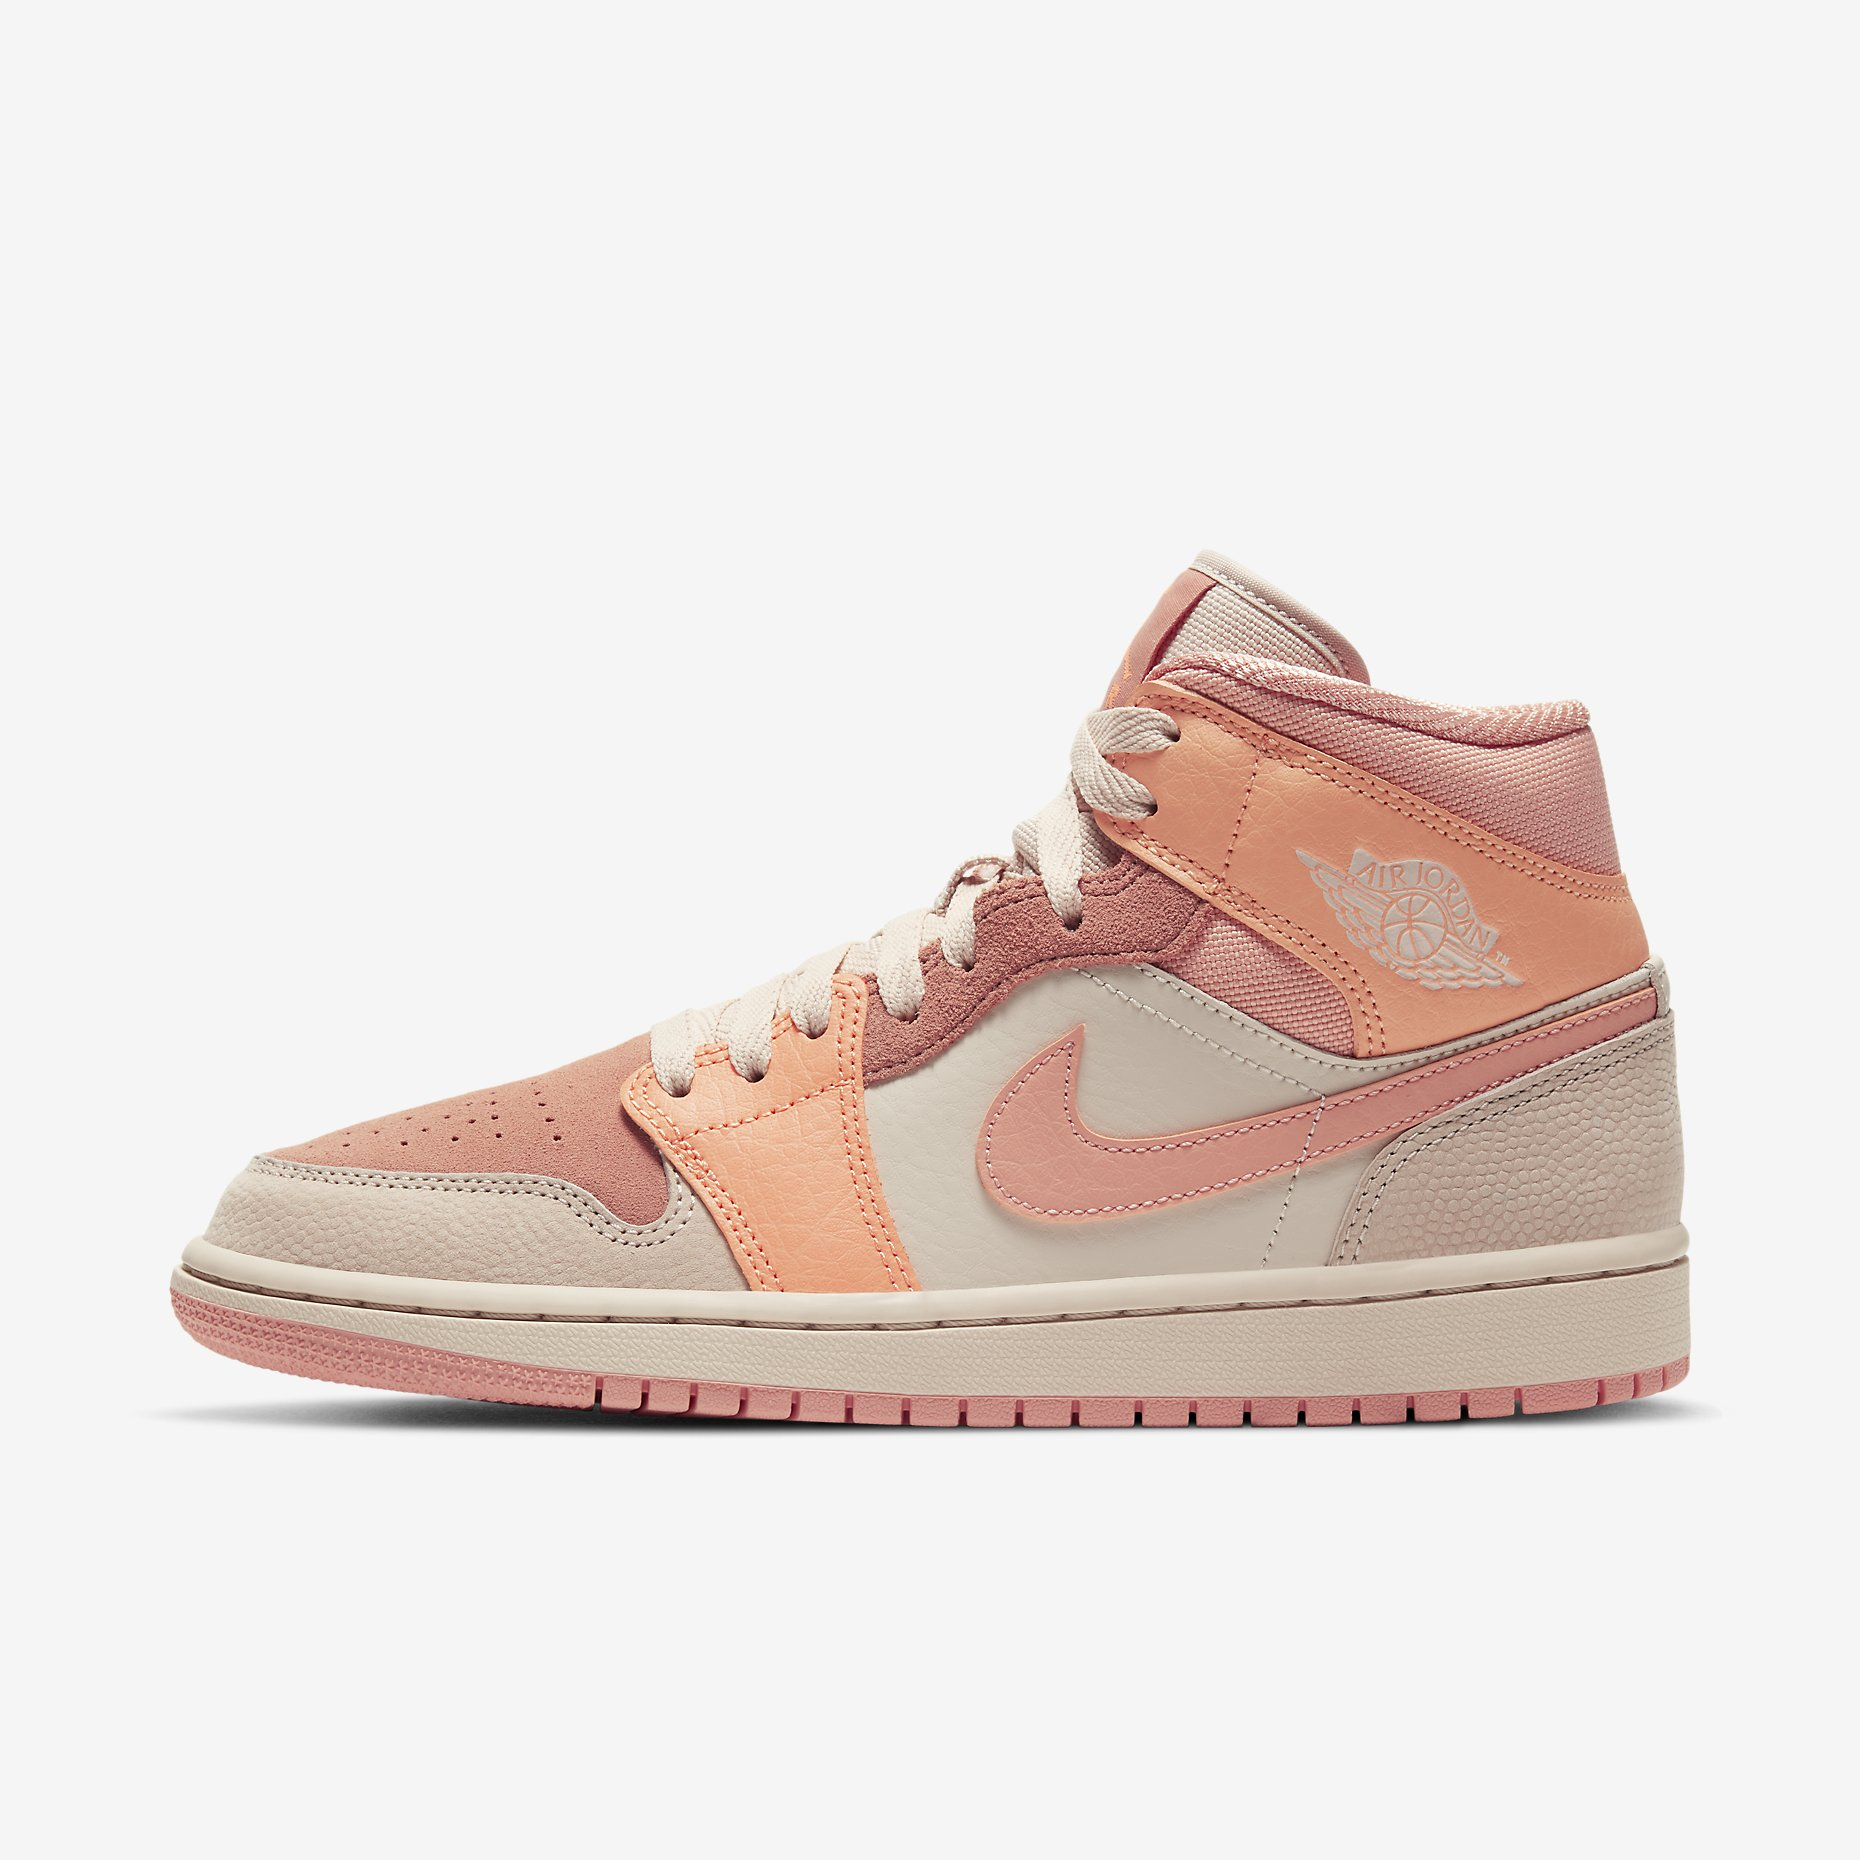 Women's Air Jordan 1 Mid 'Apricot Orange'}